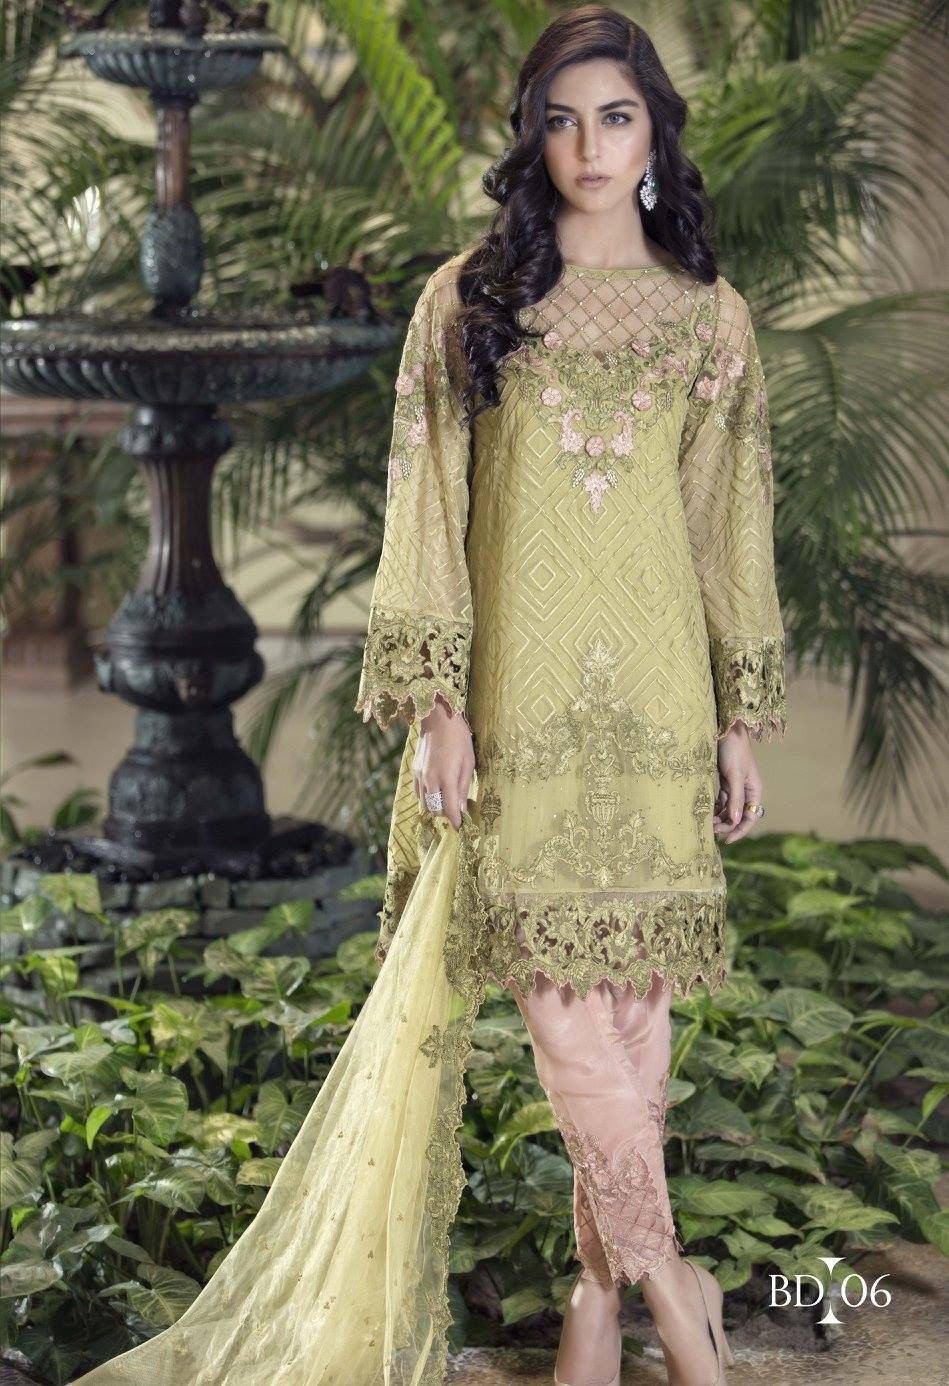 534cf0fca4 Pakistani Clothes- Original MariaB Mbroidered Chiffon 2016 Collection-  Shalwar Kameez, Indian/Bollywood Salwar Suit Pakistani Fashion by  KaamdaniCouture on ...